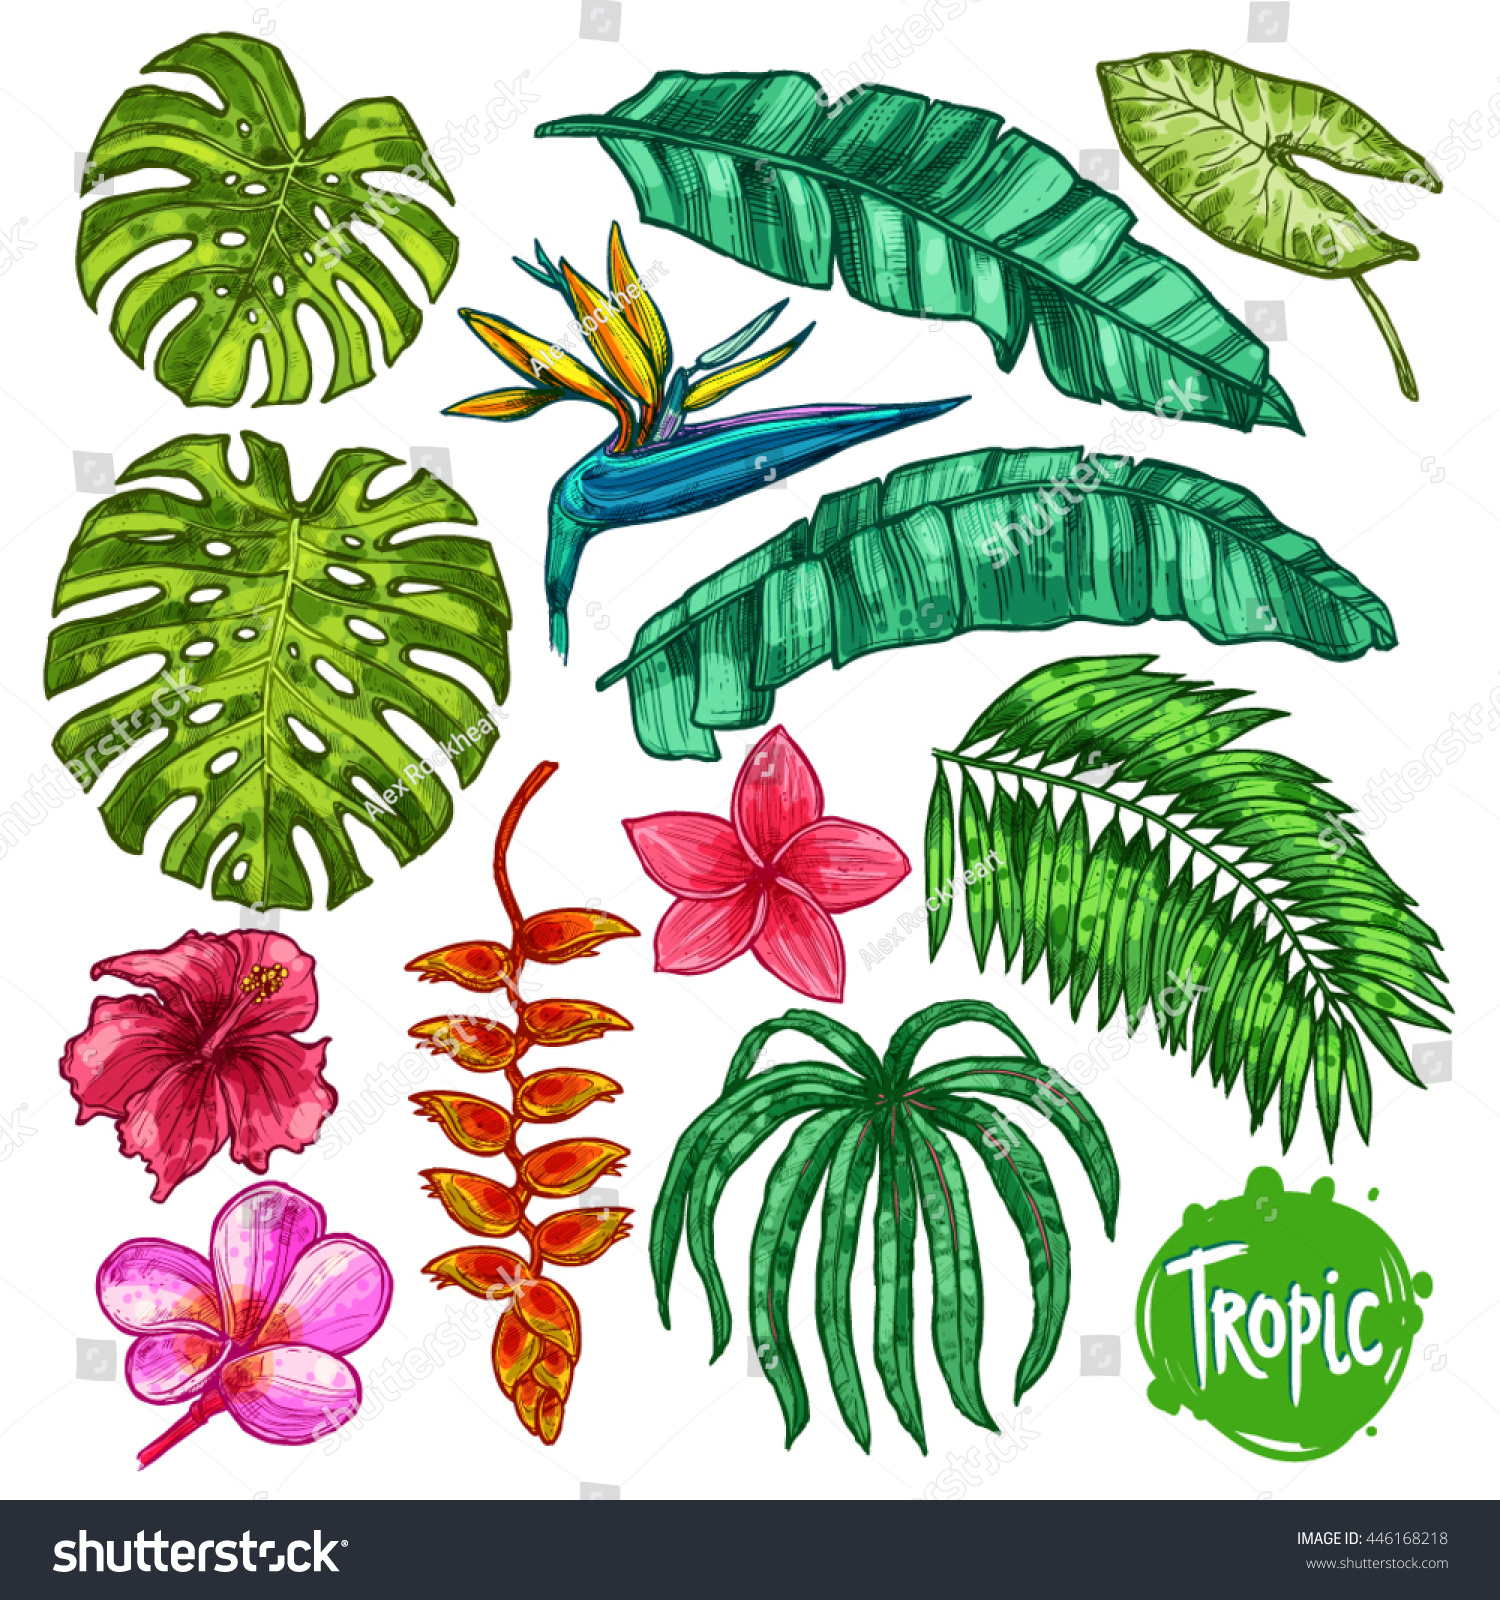 Hand Drawn Tropical Leaves And Flowers Color Set Botanical Collection In Sketch Style